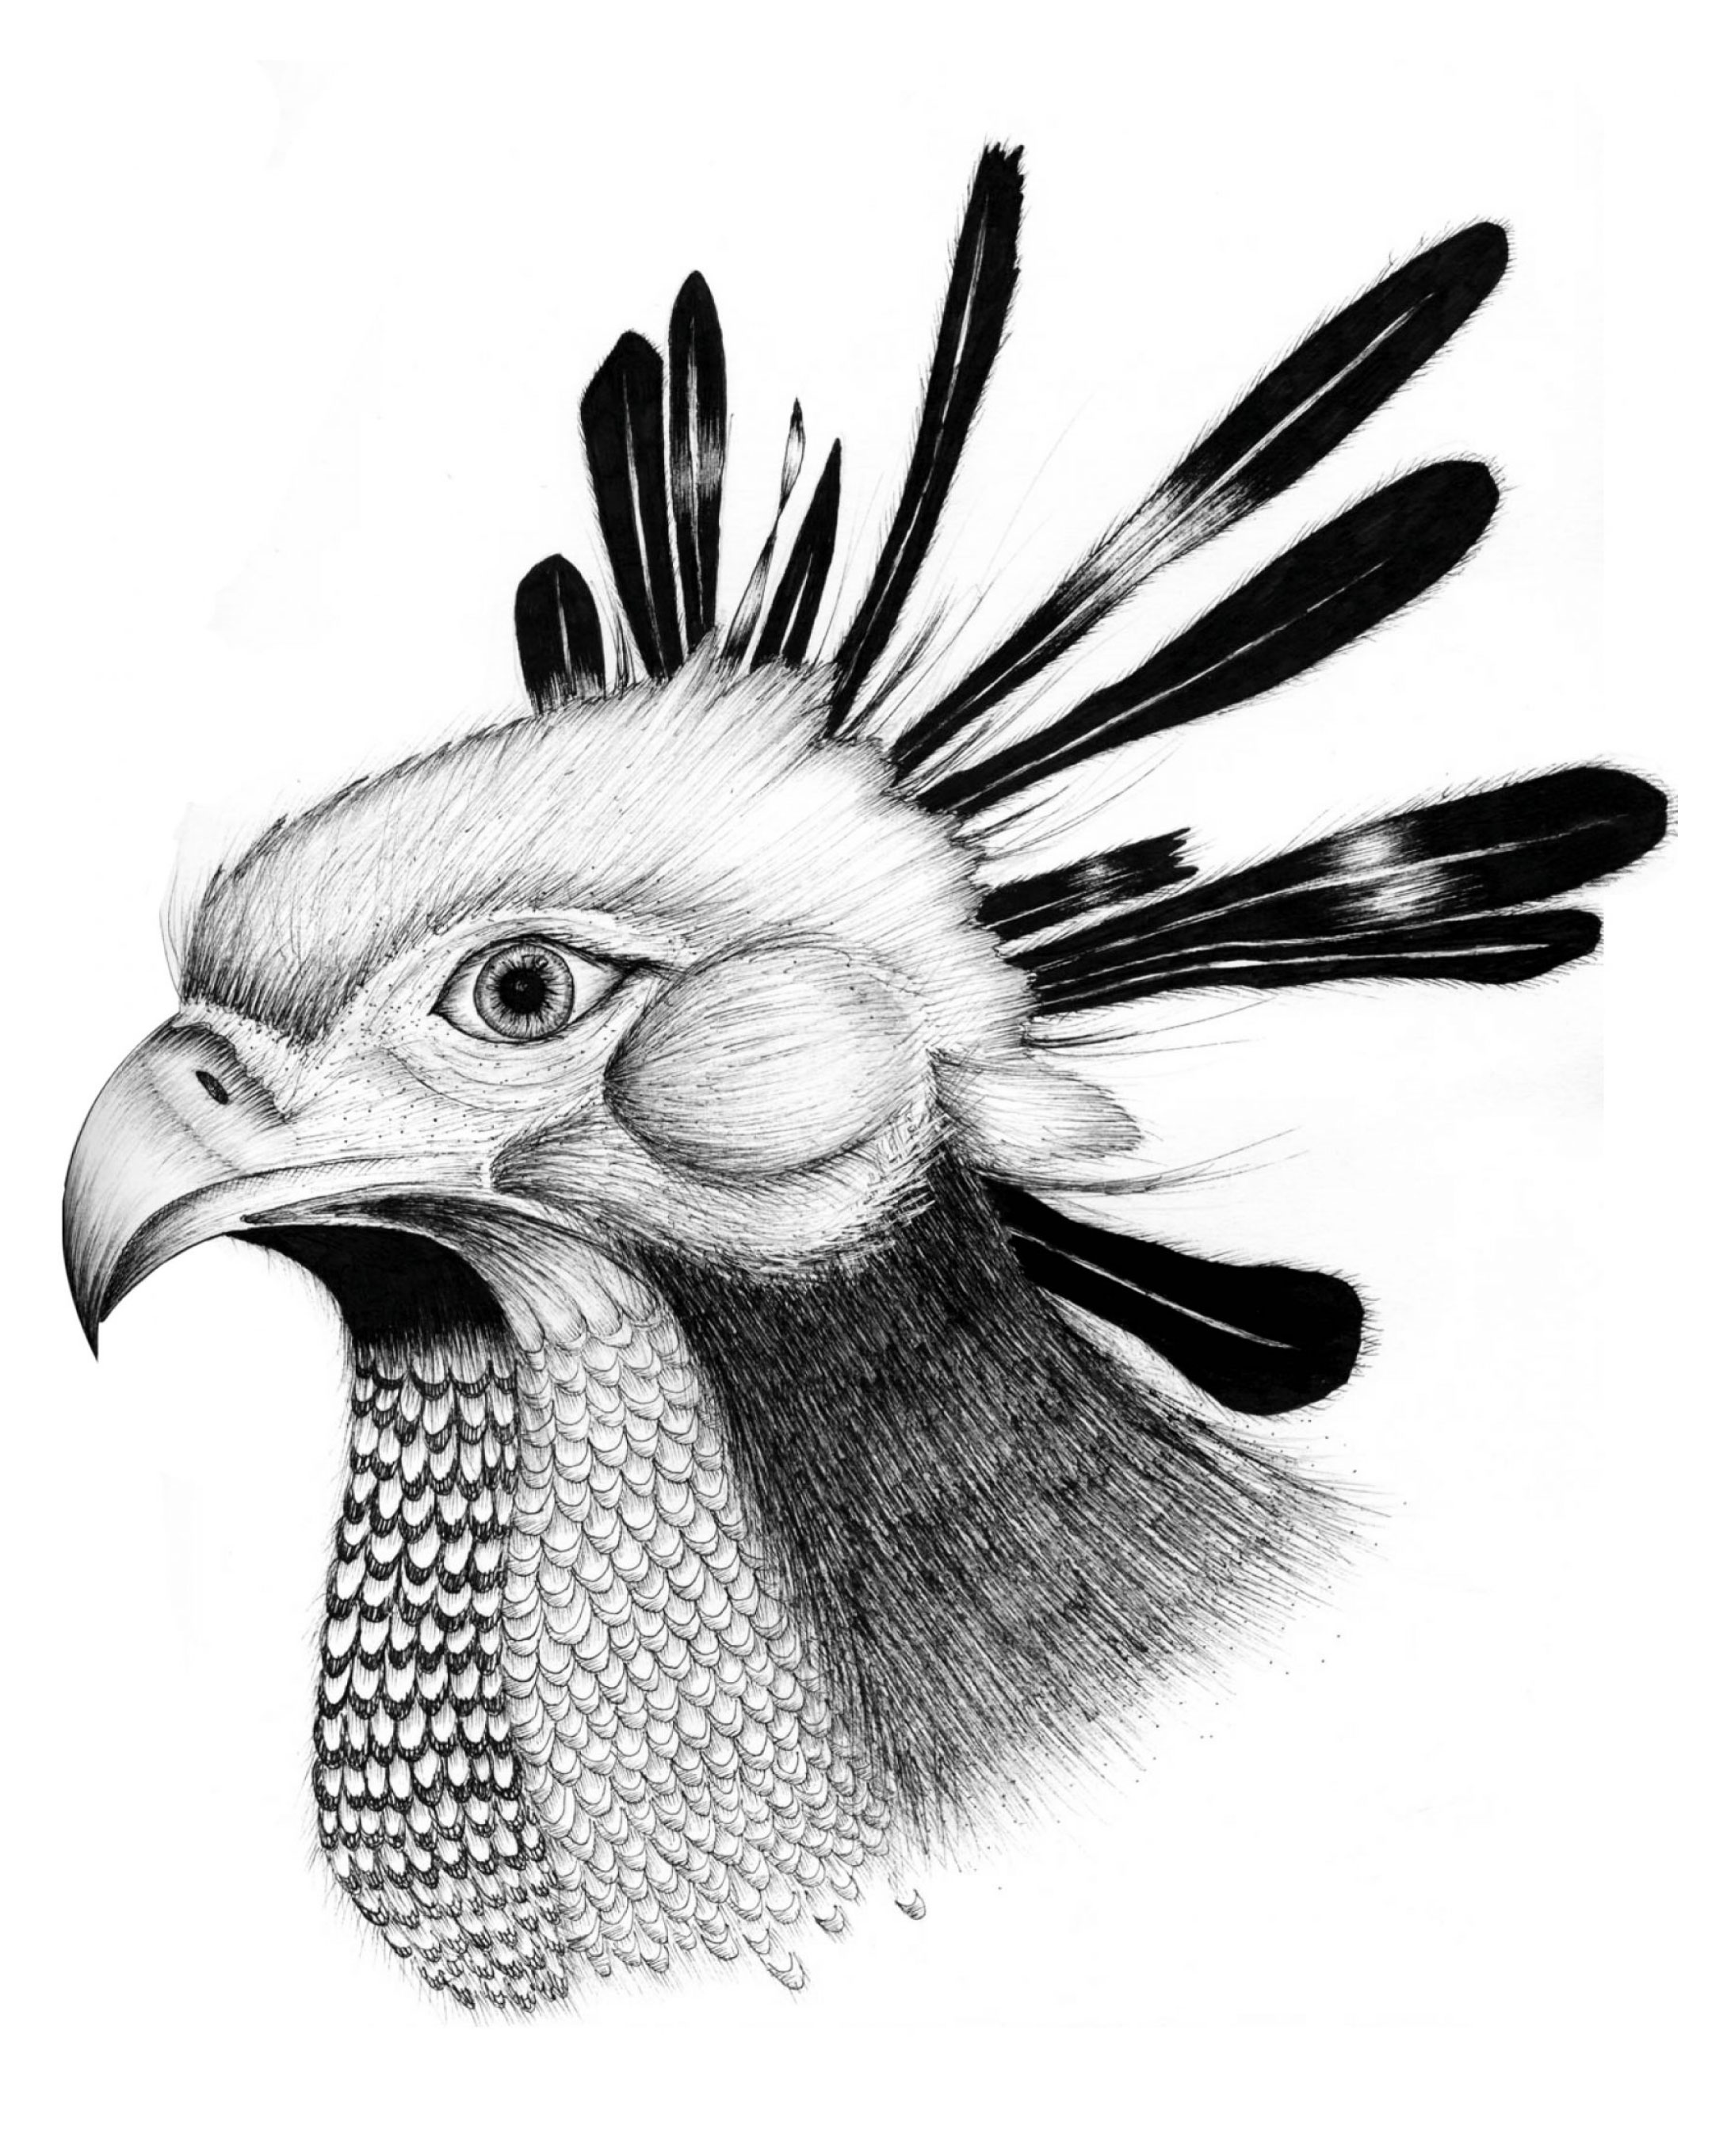 Go to detail page Secretary bird